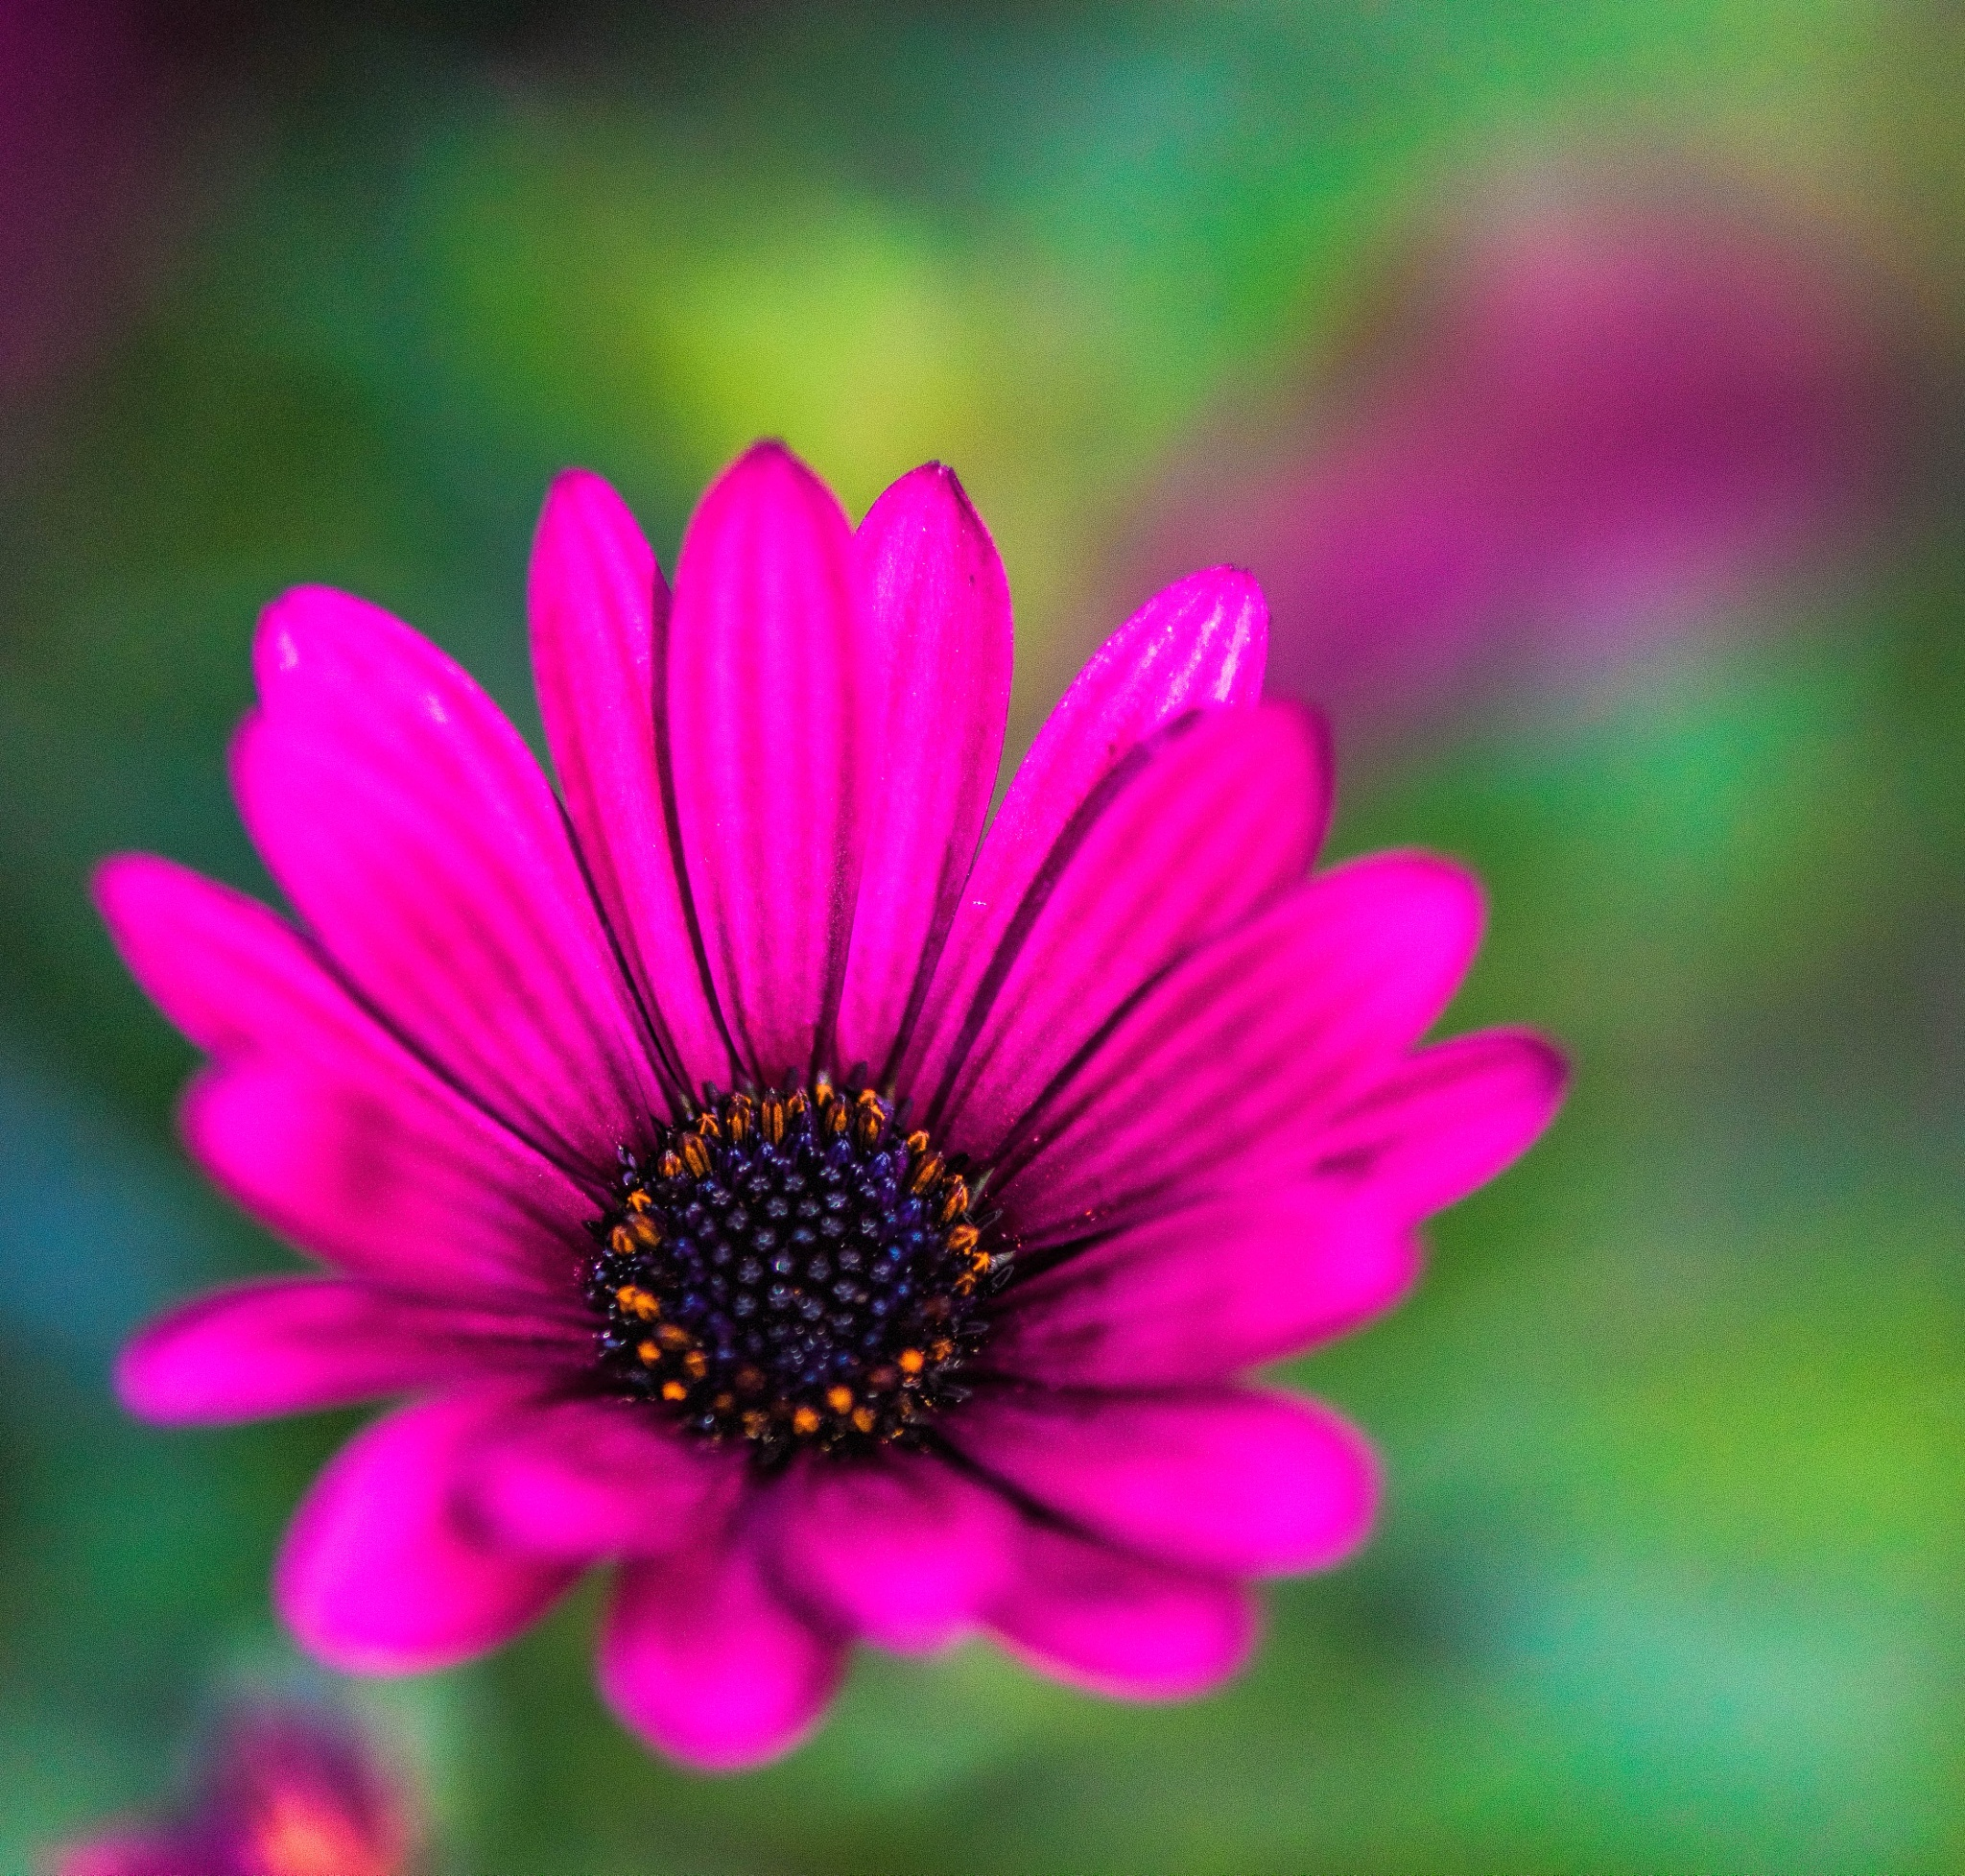 The other eye... by Frederic Gombert